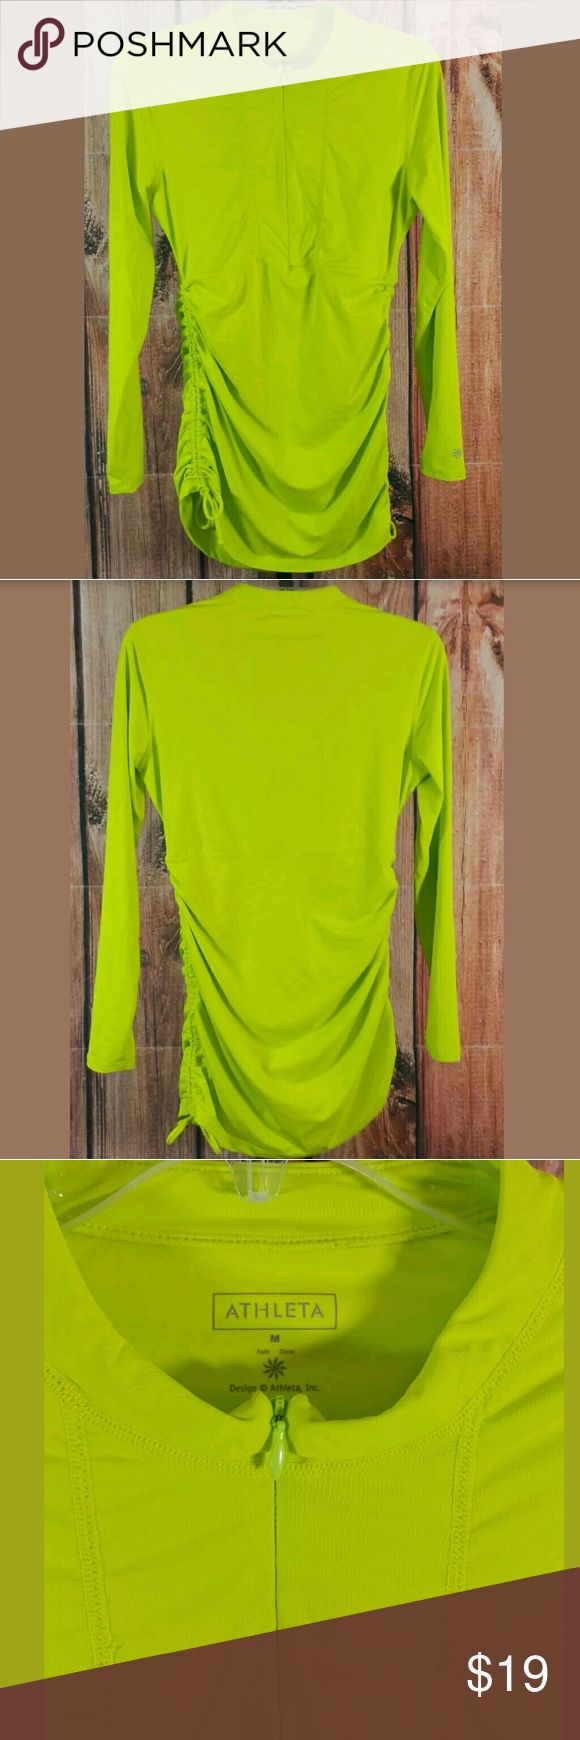 """Athleta Half Zip Green Long Sleeve Top Size Medium Athleta Half Zip Long Sleeve Top Size Medium Lime Green Ruched Sides Condition:  Great Pre-Owned Condition from clean pet/smoke free home.  Measurements:  Bust:  15"""" Length:  29"""" Athleta Tops"""